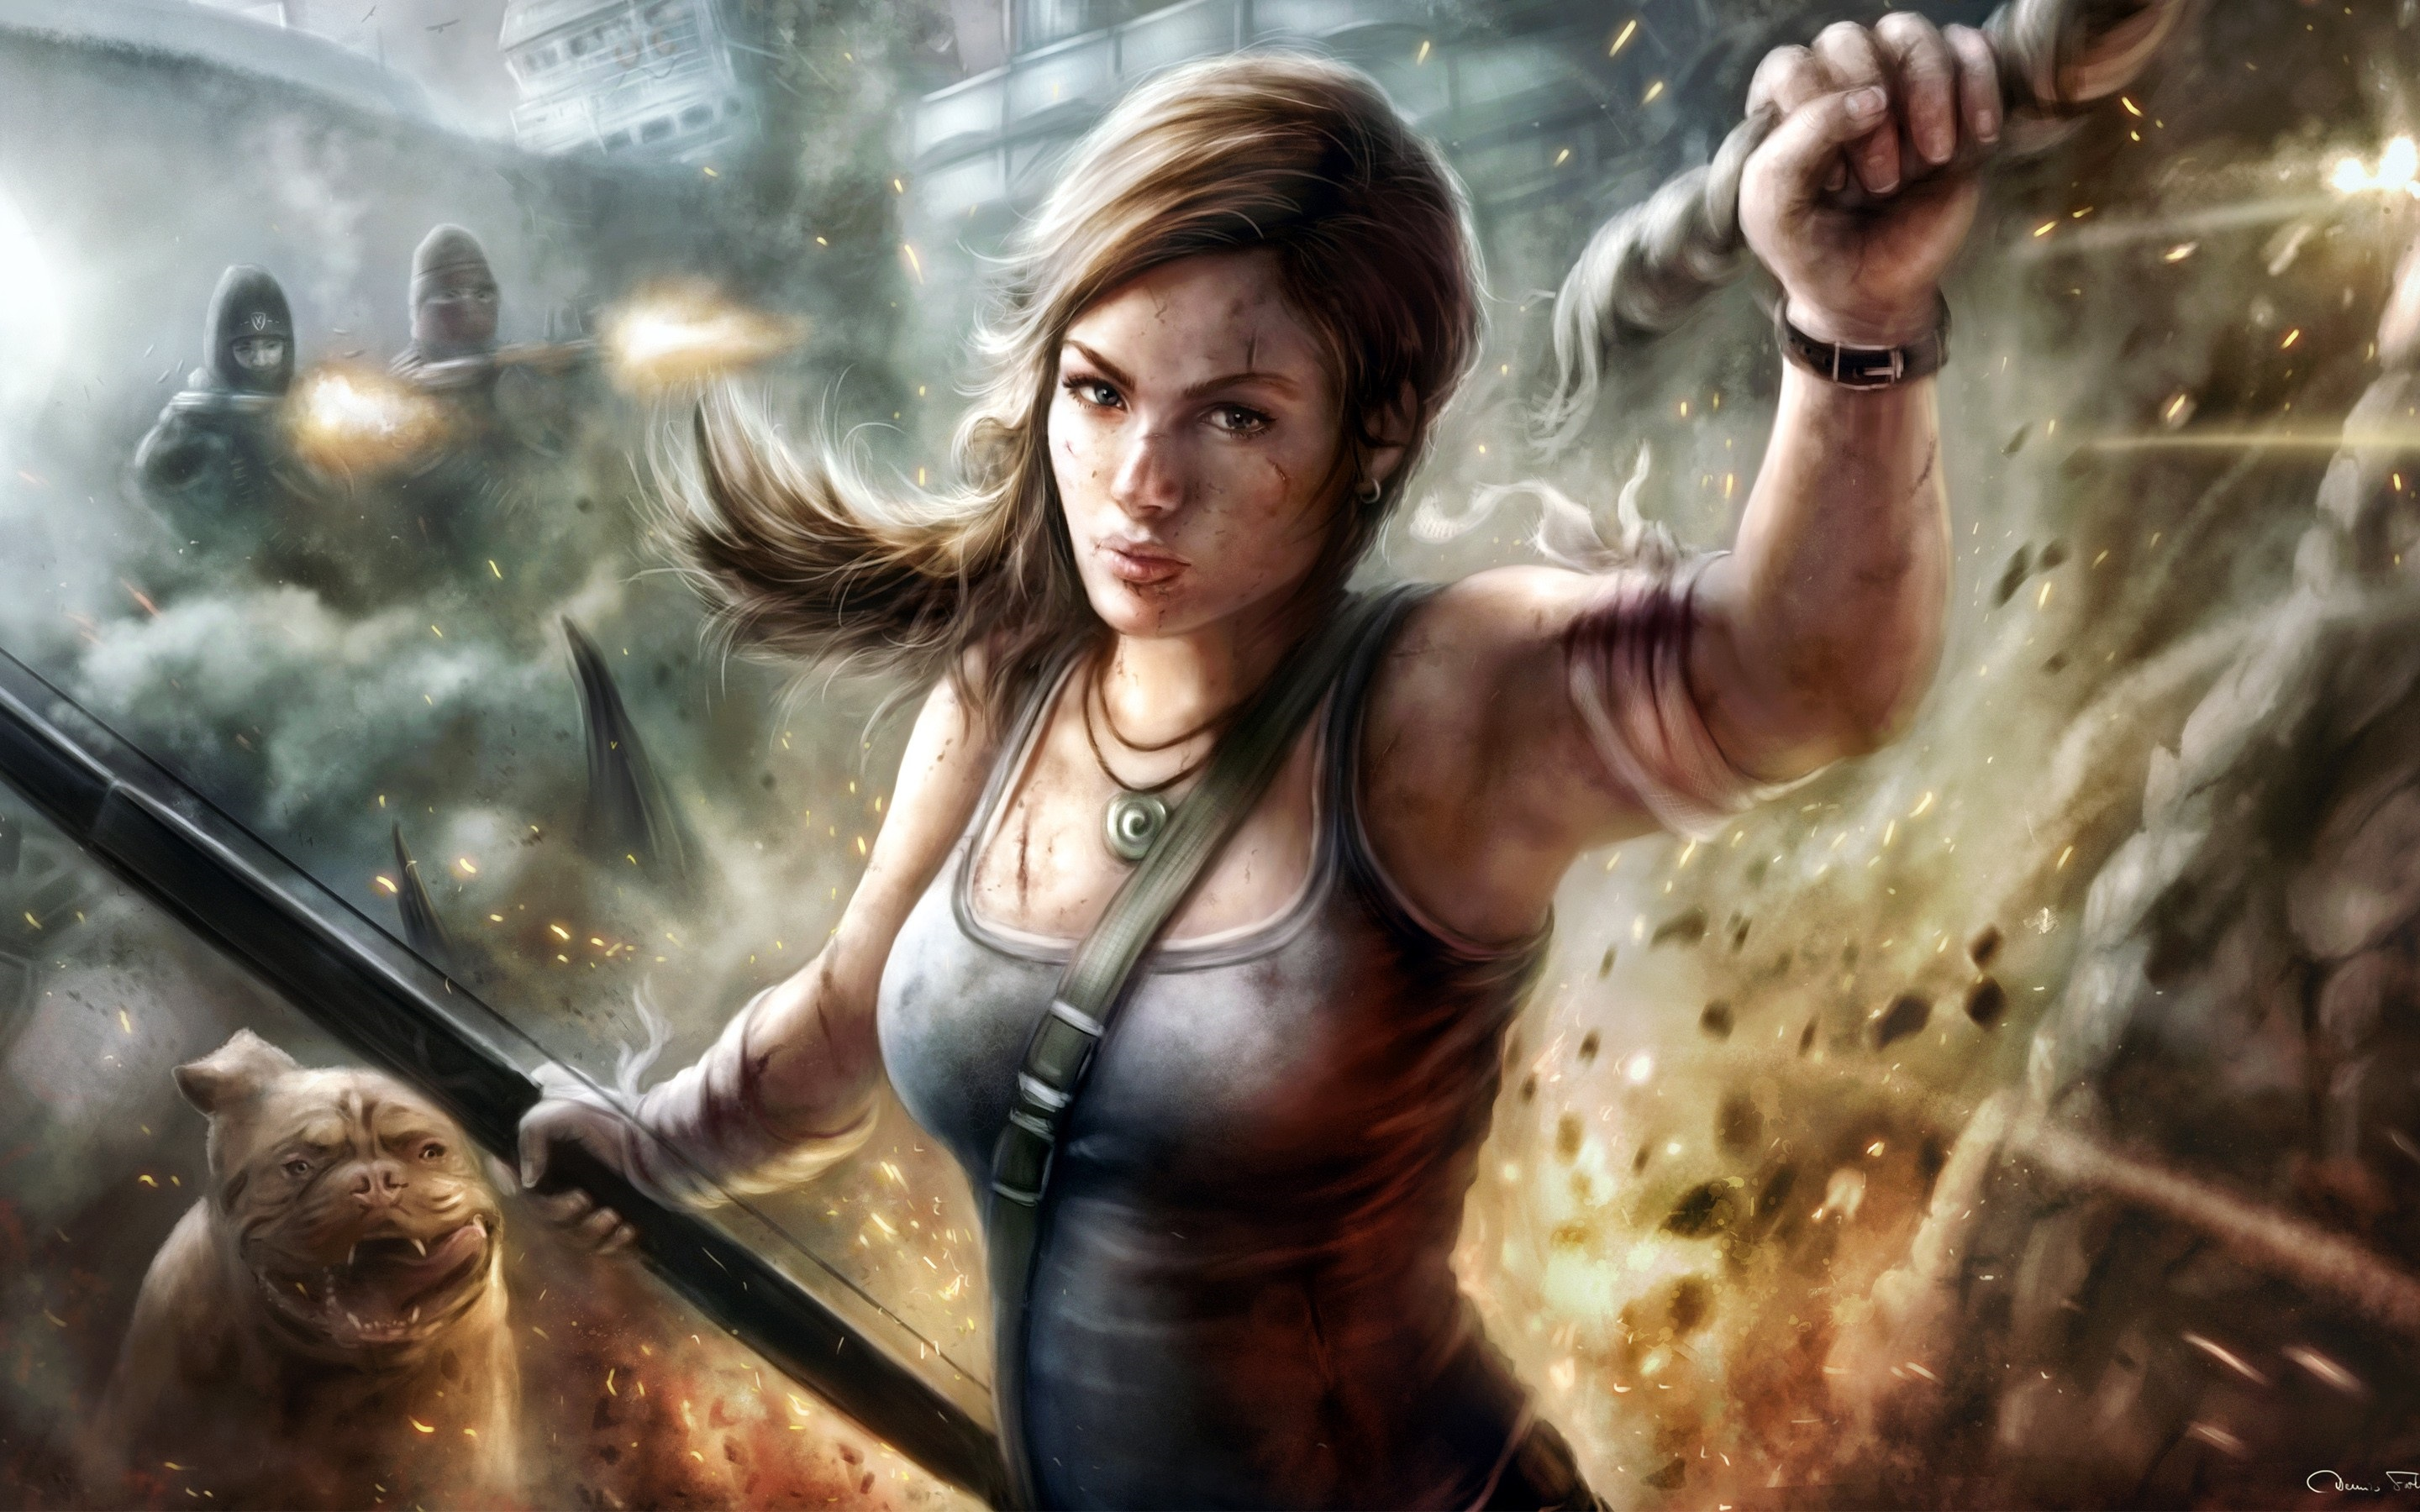 Wallpaper Lara Croft Tomb Raider Video Game 2880x1800 Hd